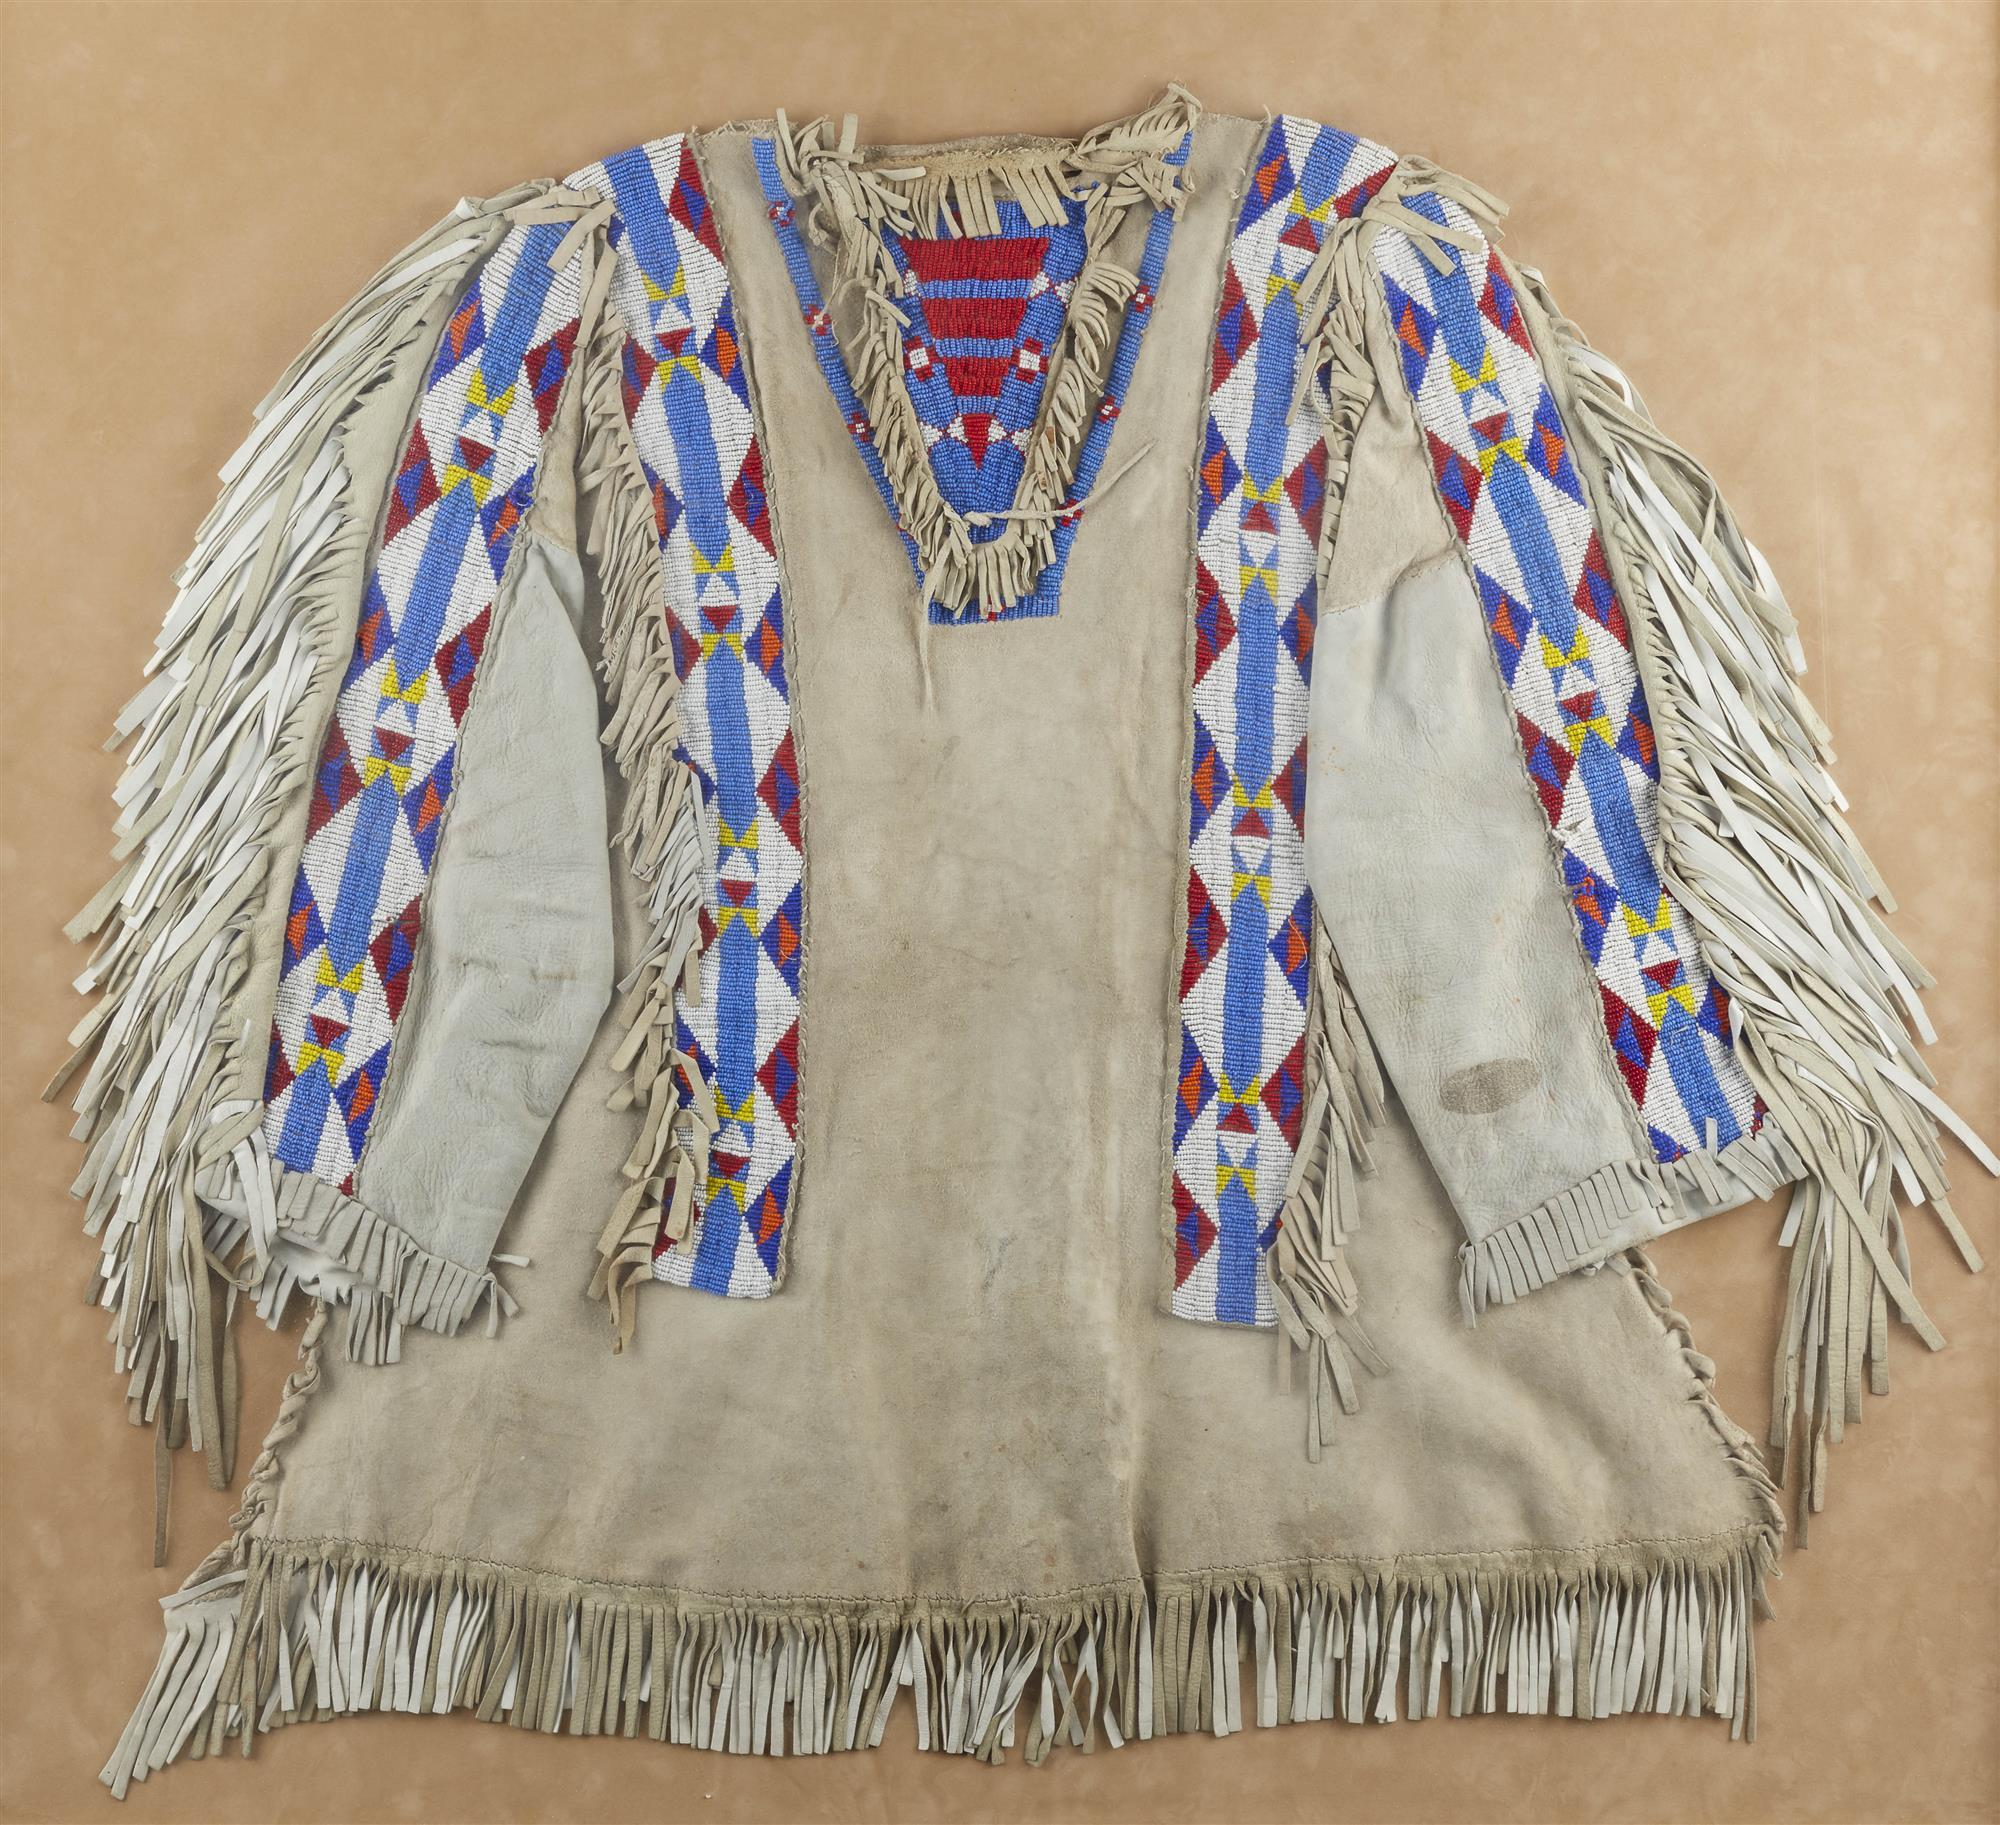 A framed Plains beaded war shirt